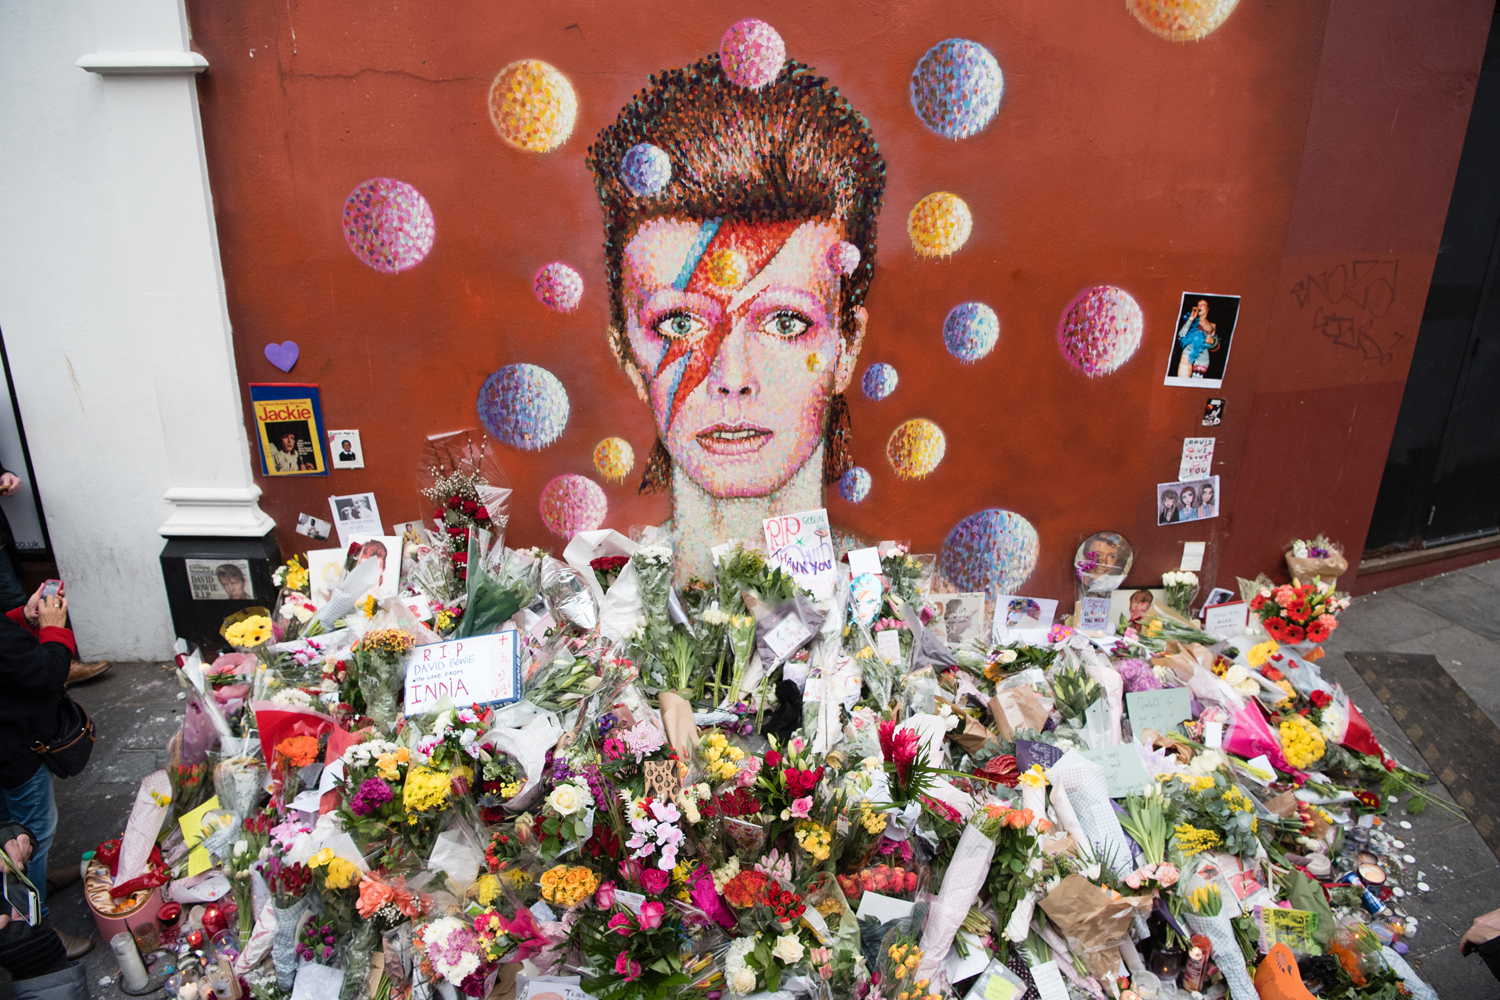 "Floral tributes are seen beneath a mural of British singer David Bowie, painted by Australian street artist James Cochran, aka Jimmy C, the day after the announcement of Bowie's death, in Brixton, south London, on January 12, 2016. Music legend David Bowie was famously private during his lifetime -- and in death, as a string of questions about the circumstances of his passing remained unanswered. His official social media accounts had announced the shock news of his death at 69 on January 11, 2016: ""David Bowie died peacefully today surrounded by his family after a courageous 18-month battle with cancer,"" adding a request for privacy for the grieving family. / AFP / LEON NEAL"